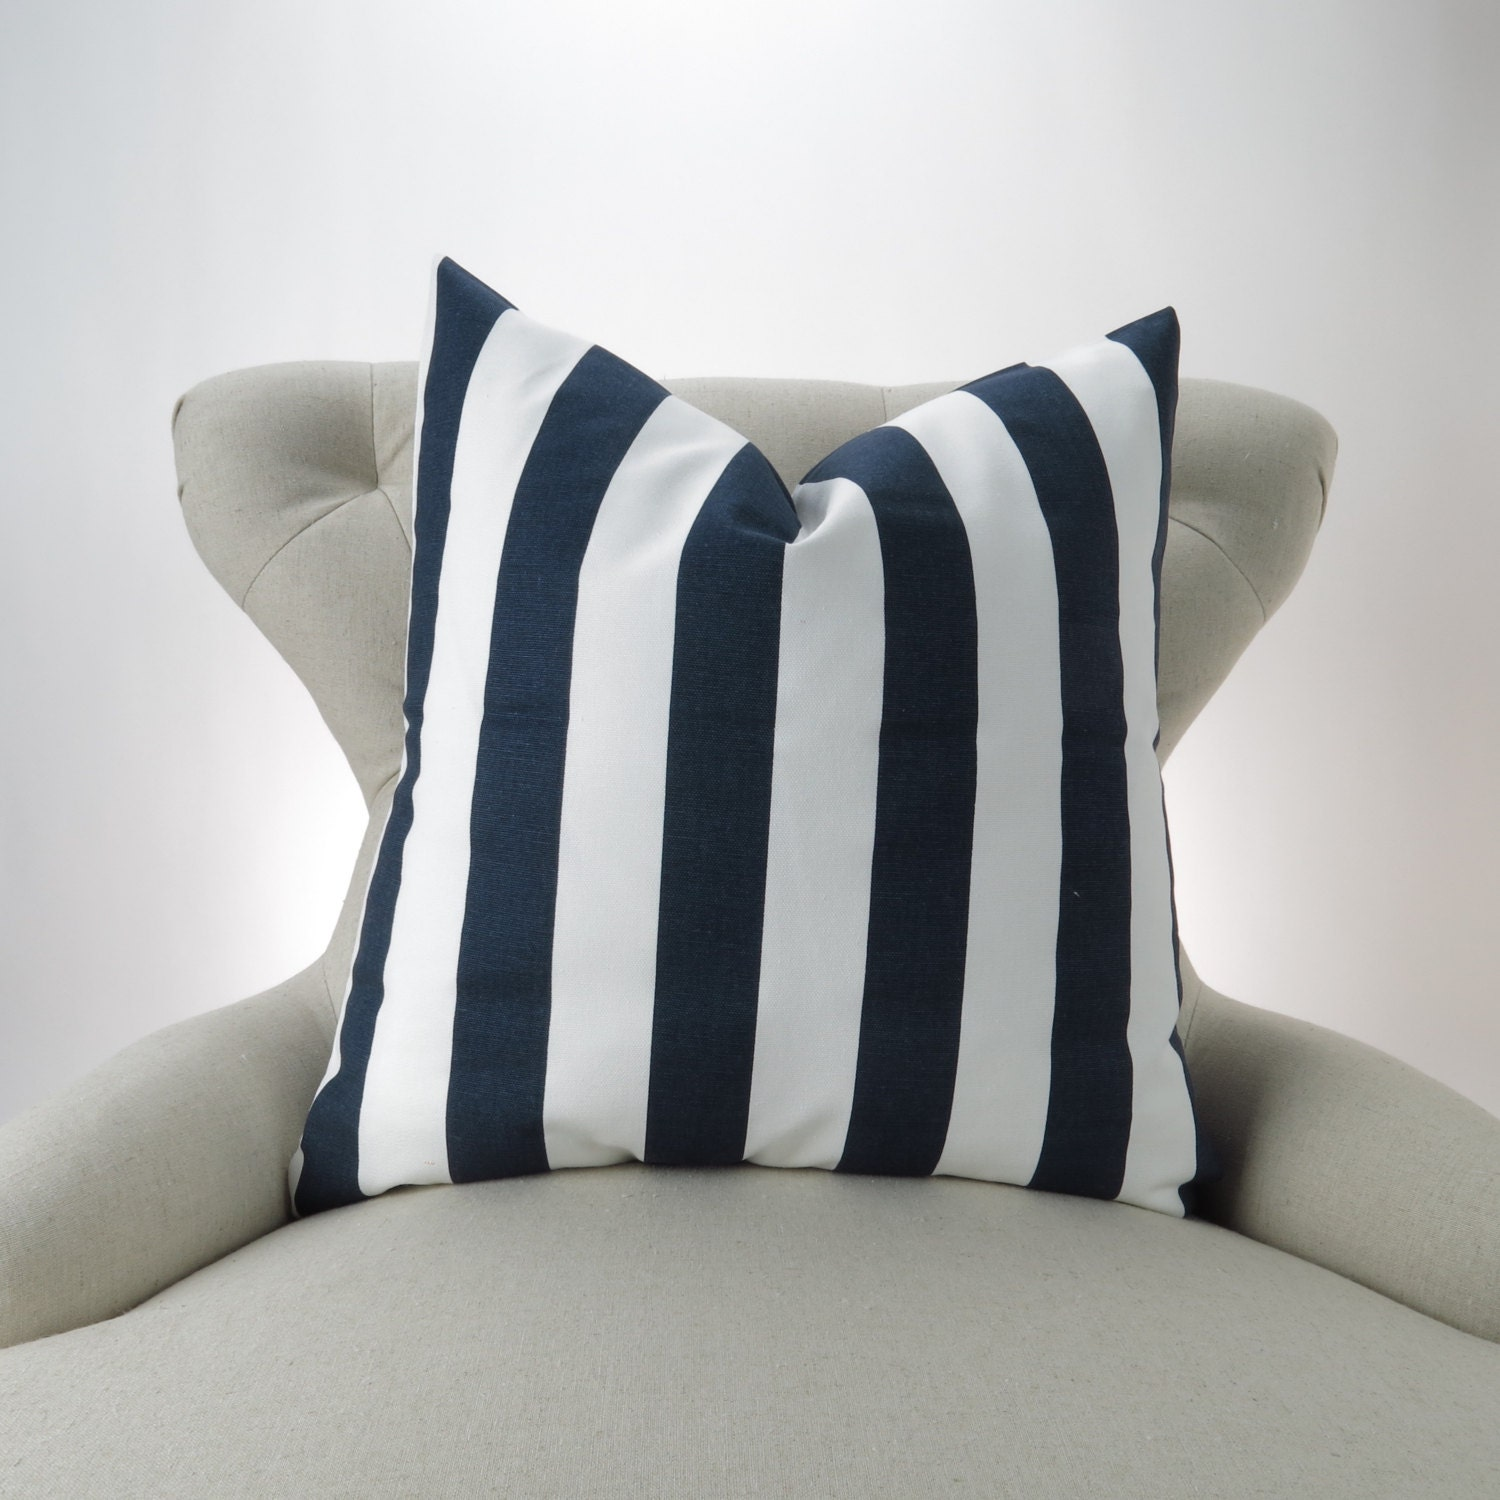 Floor Pillow Covers 25x25 : Navy Stripe Pillow Cover Floor Pillow Euro Sham Nautical